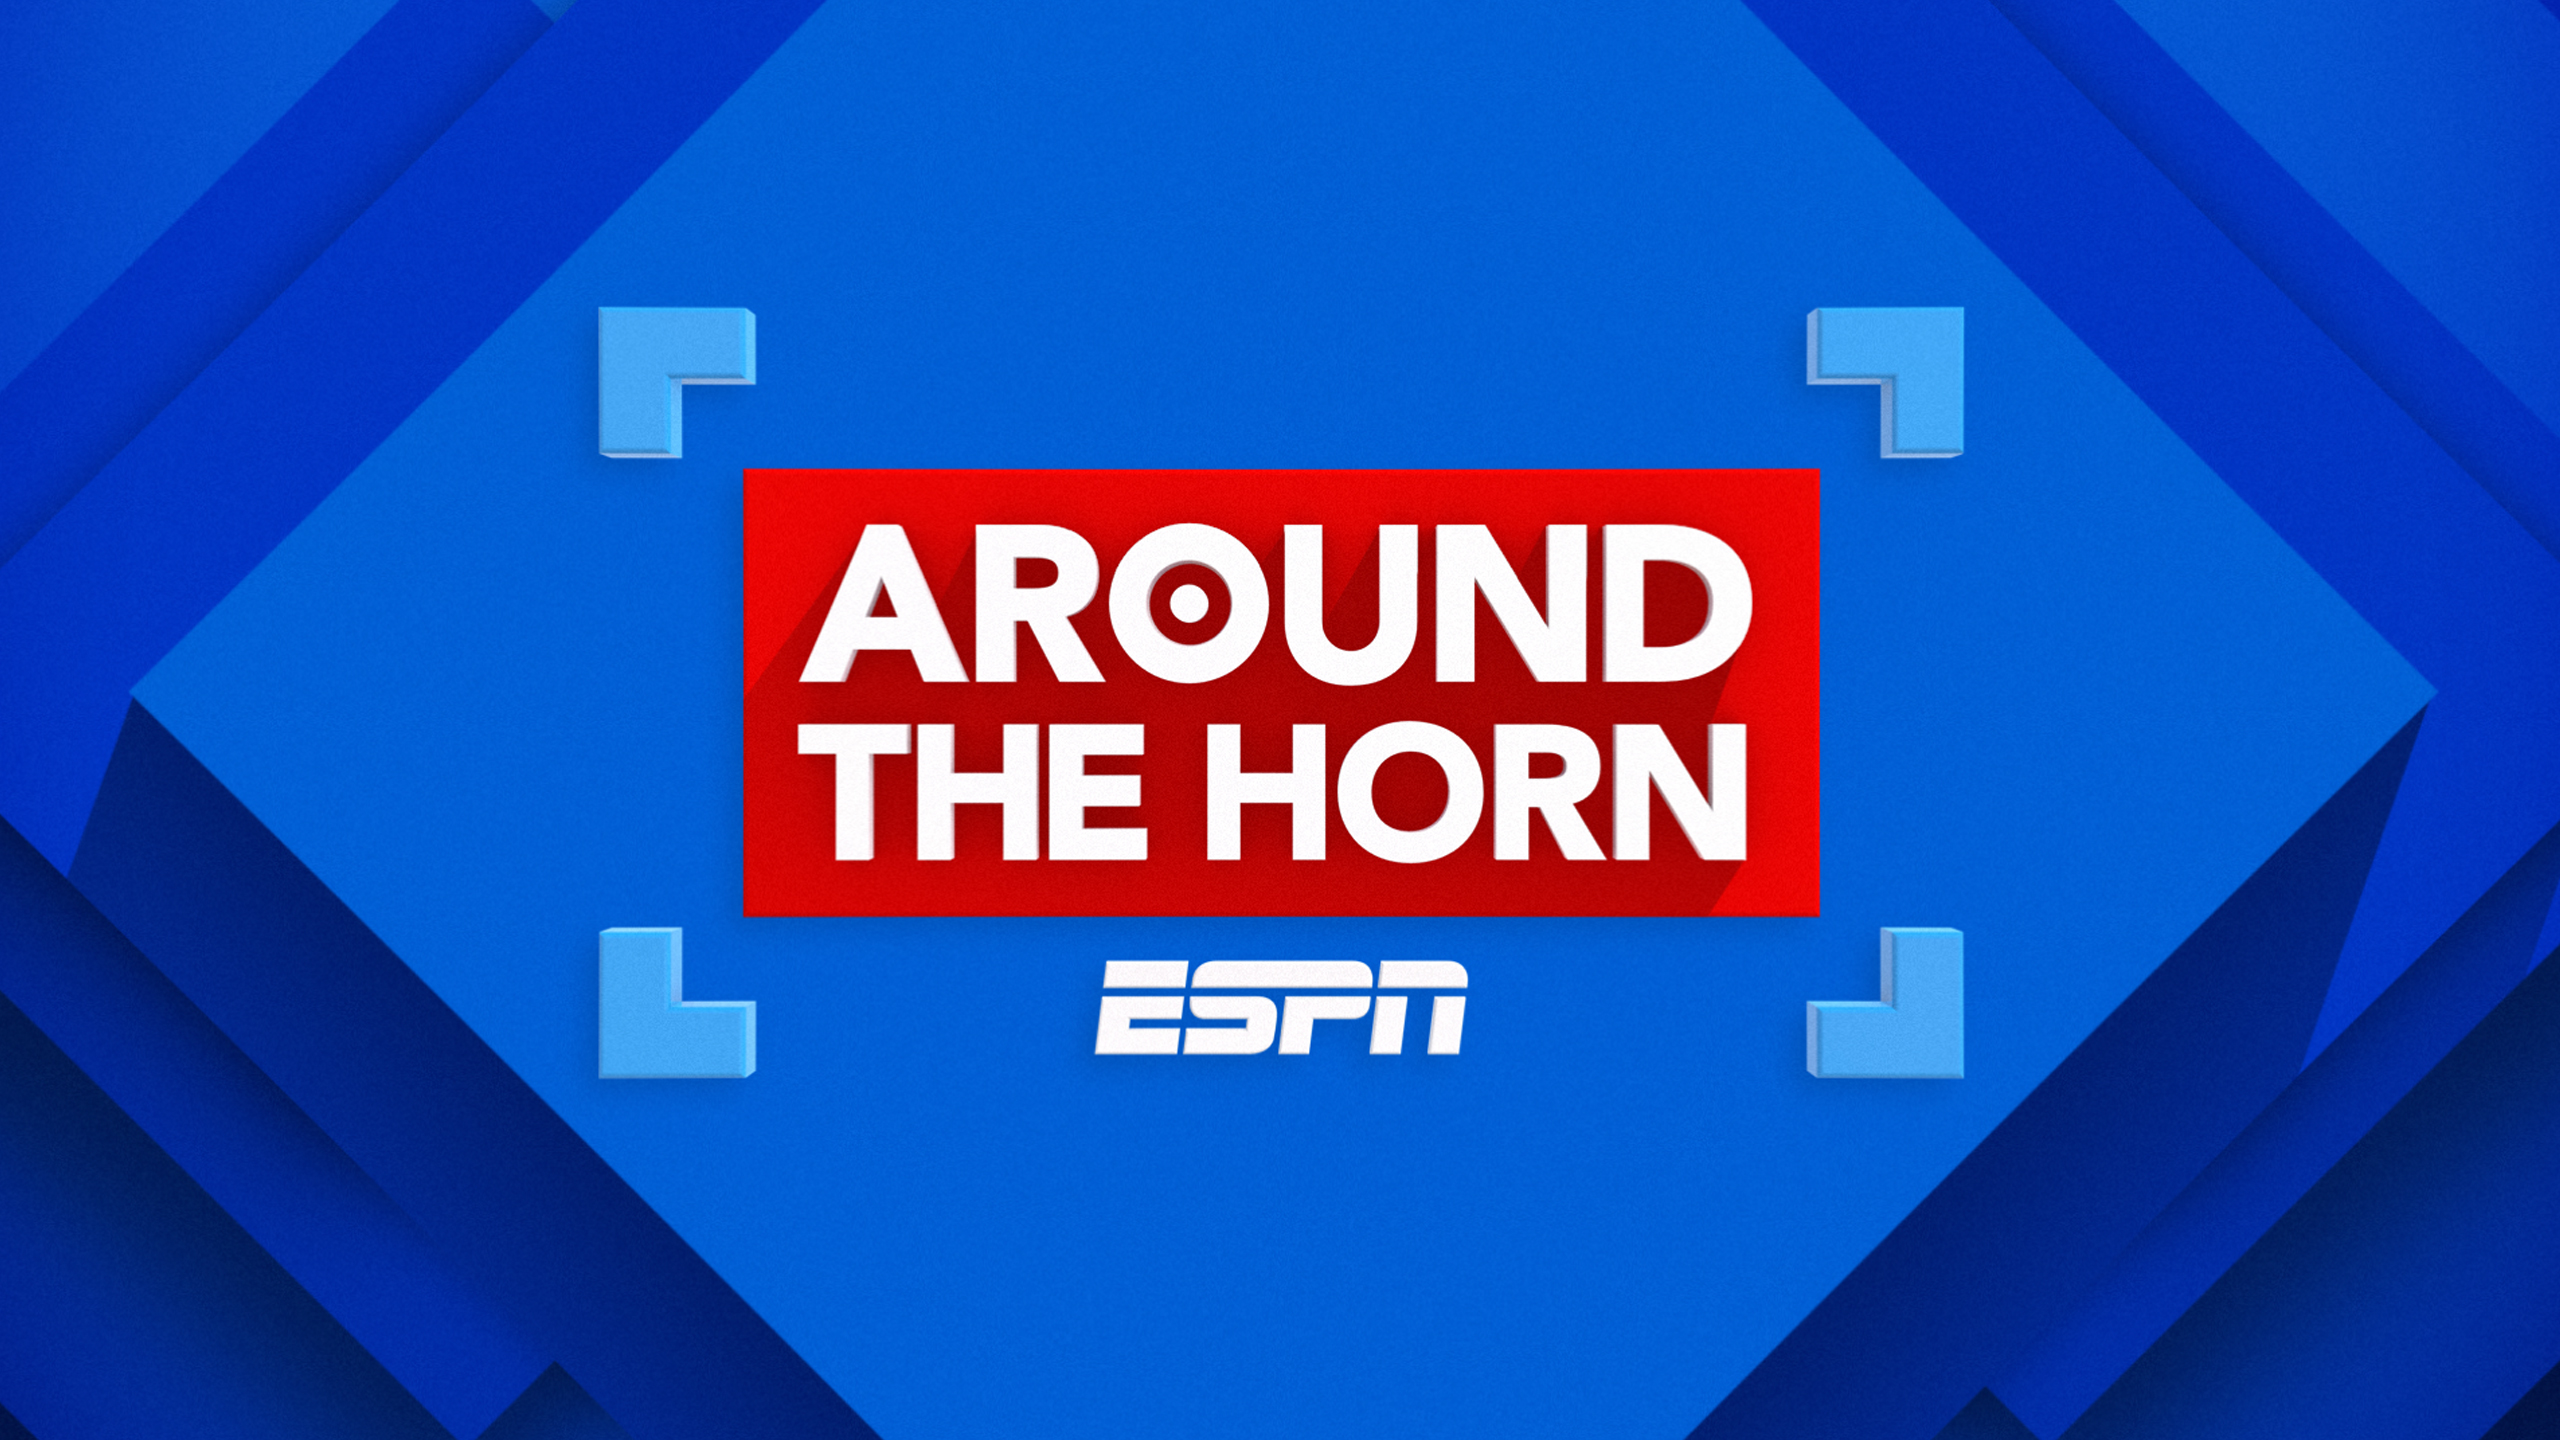 Thu, 2/21 - Around The Horn